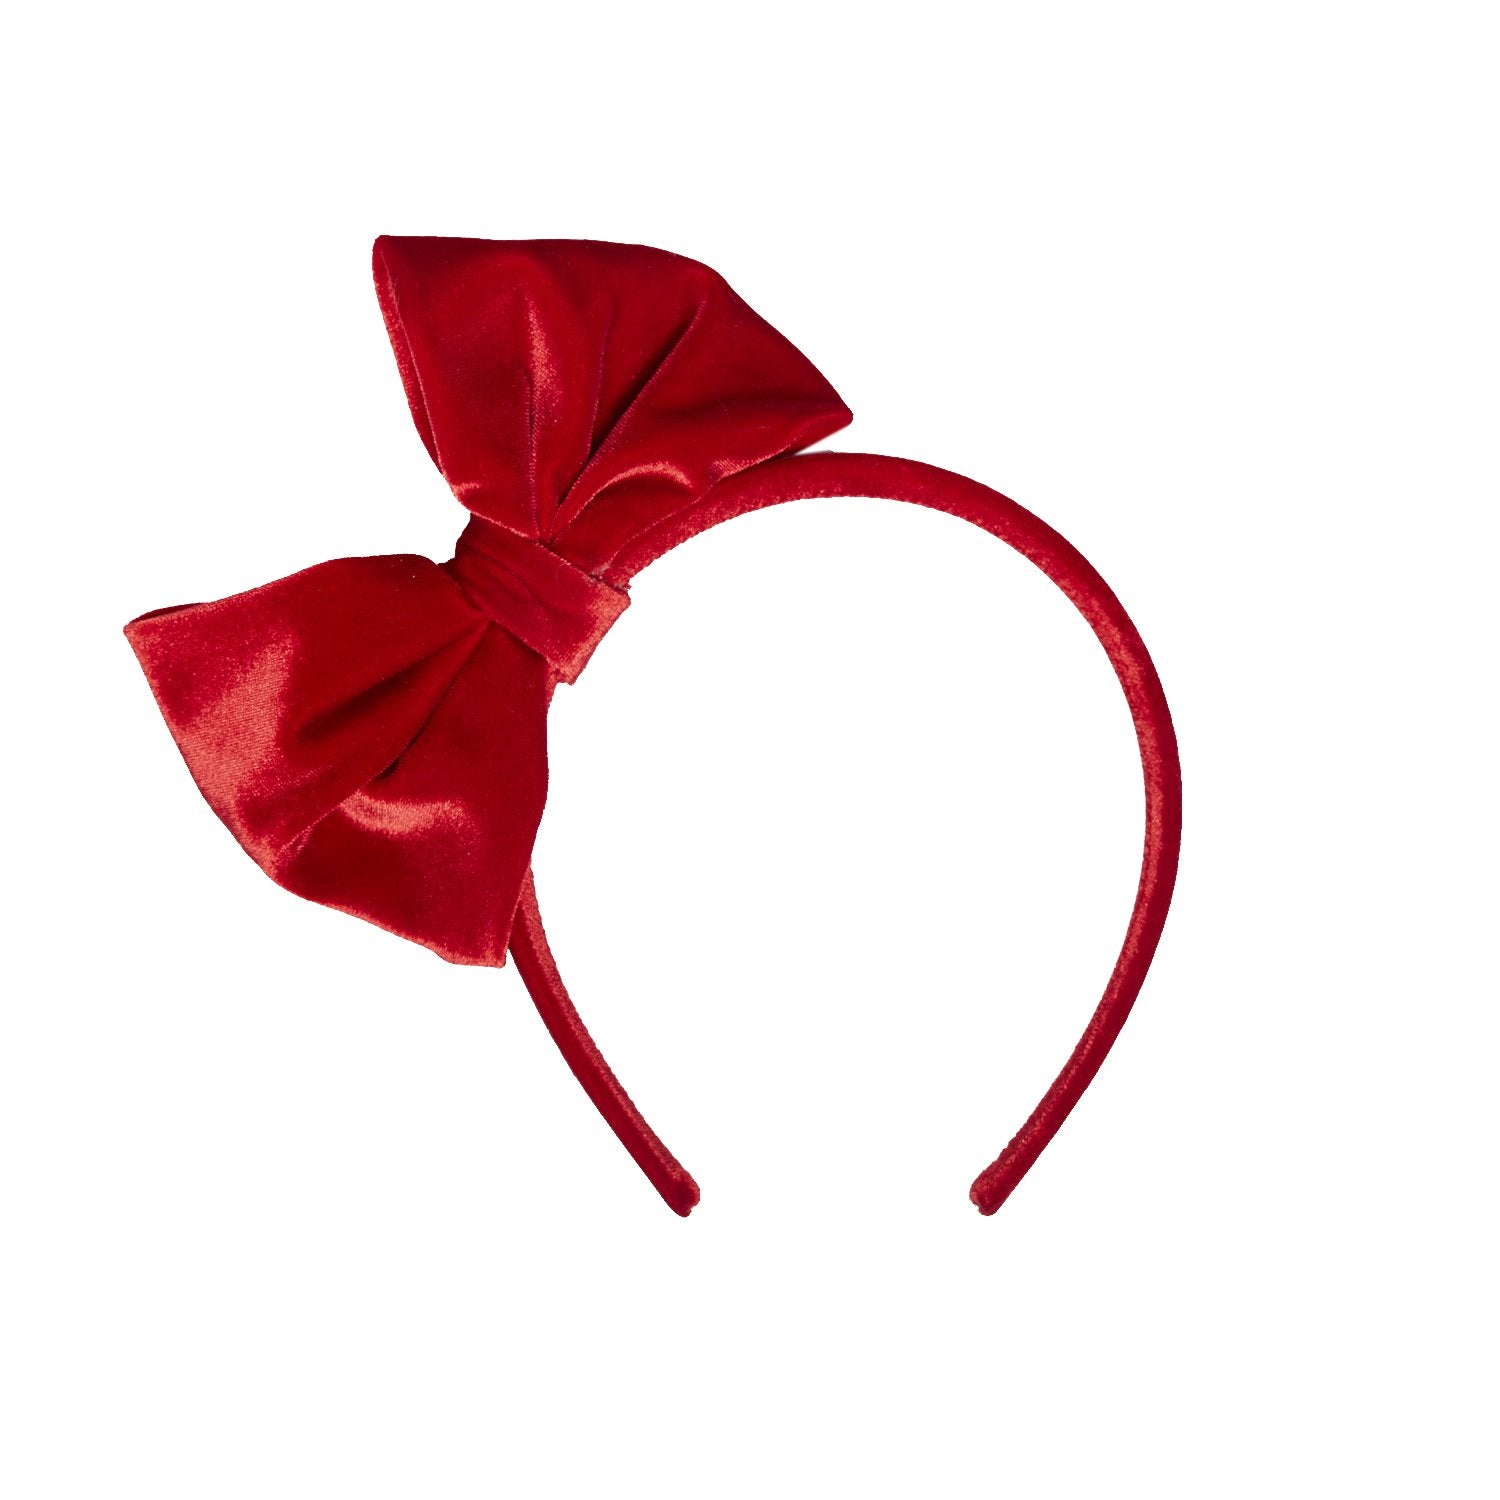 Red Velvet Bow Headband  ad01b0277c1